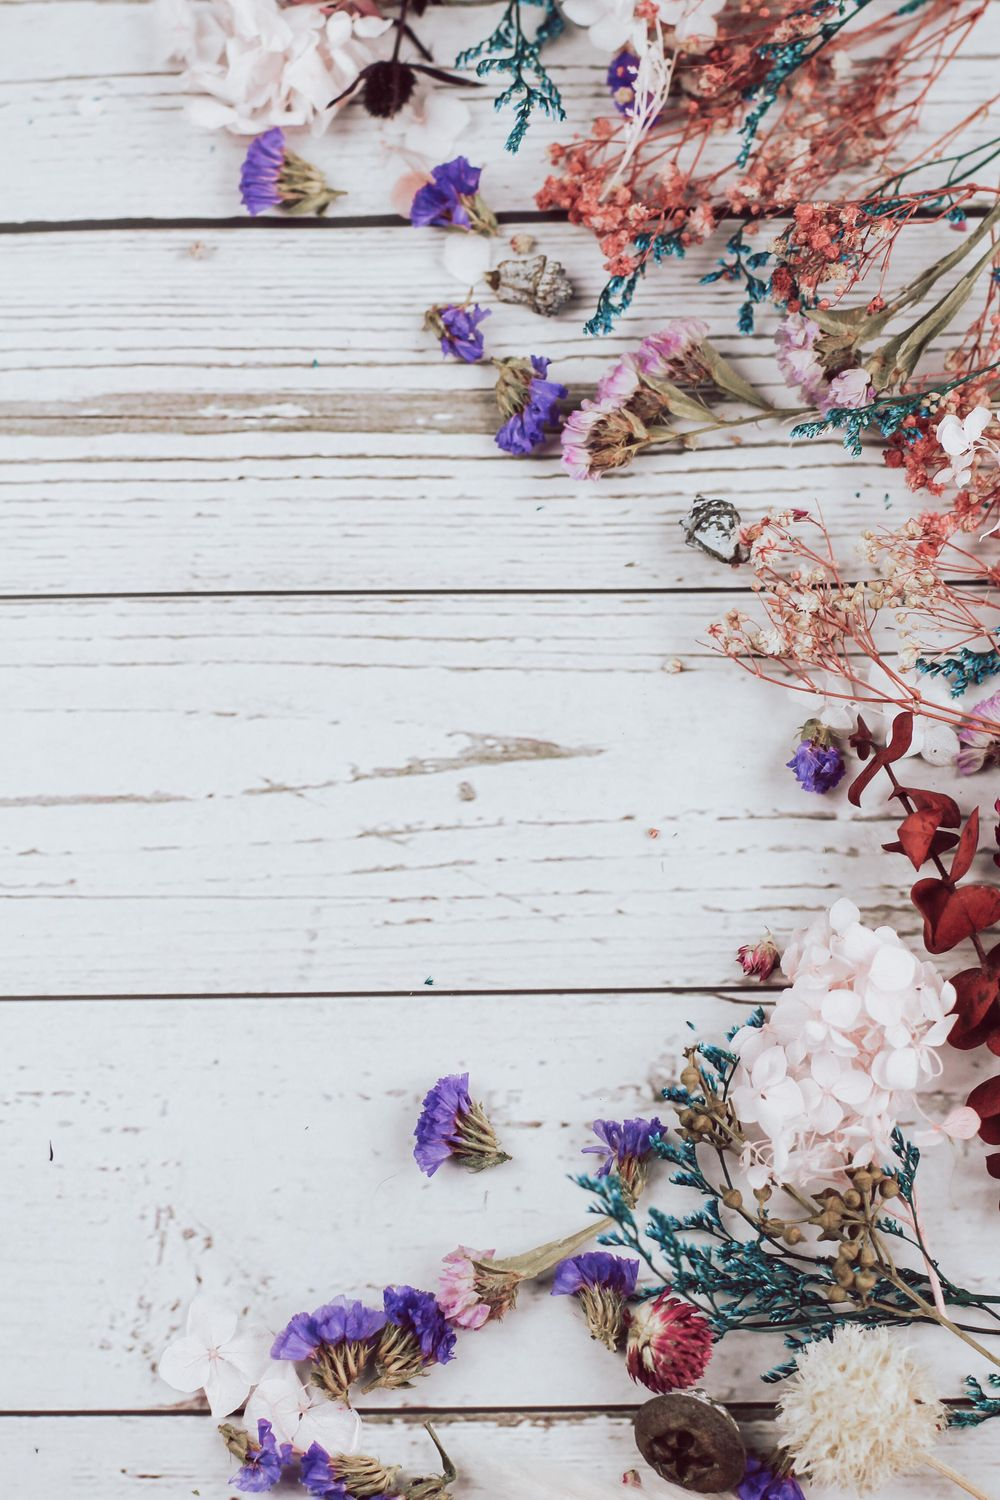 Rustic Style Photos - image 1 - student project